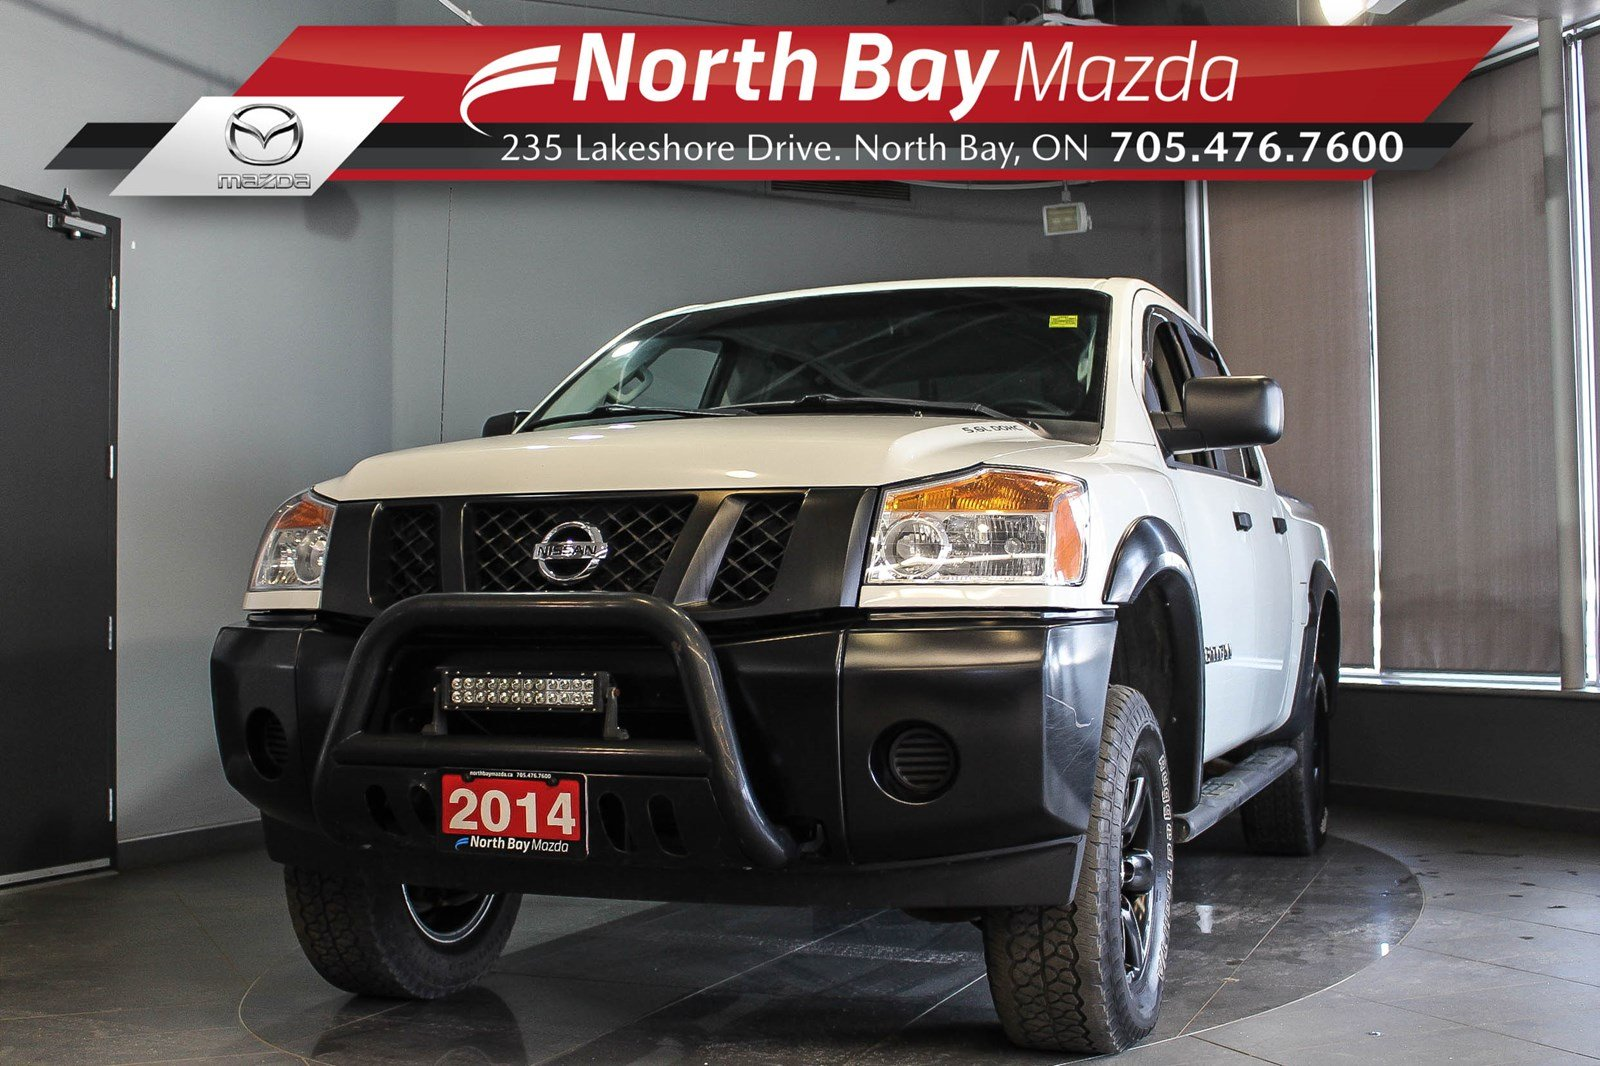 Pre-Owned 2014 Nissan Titan S 4X4 with Cruise Control, New Tires!